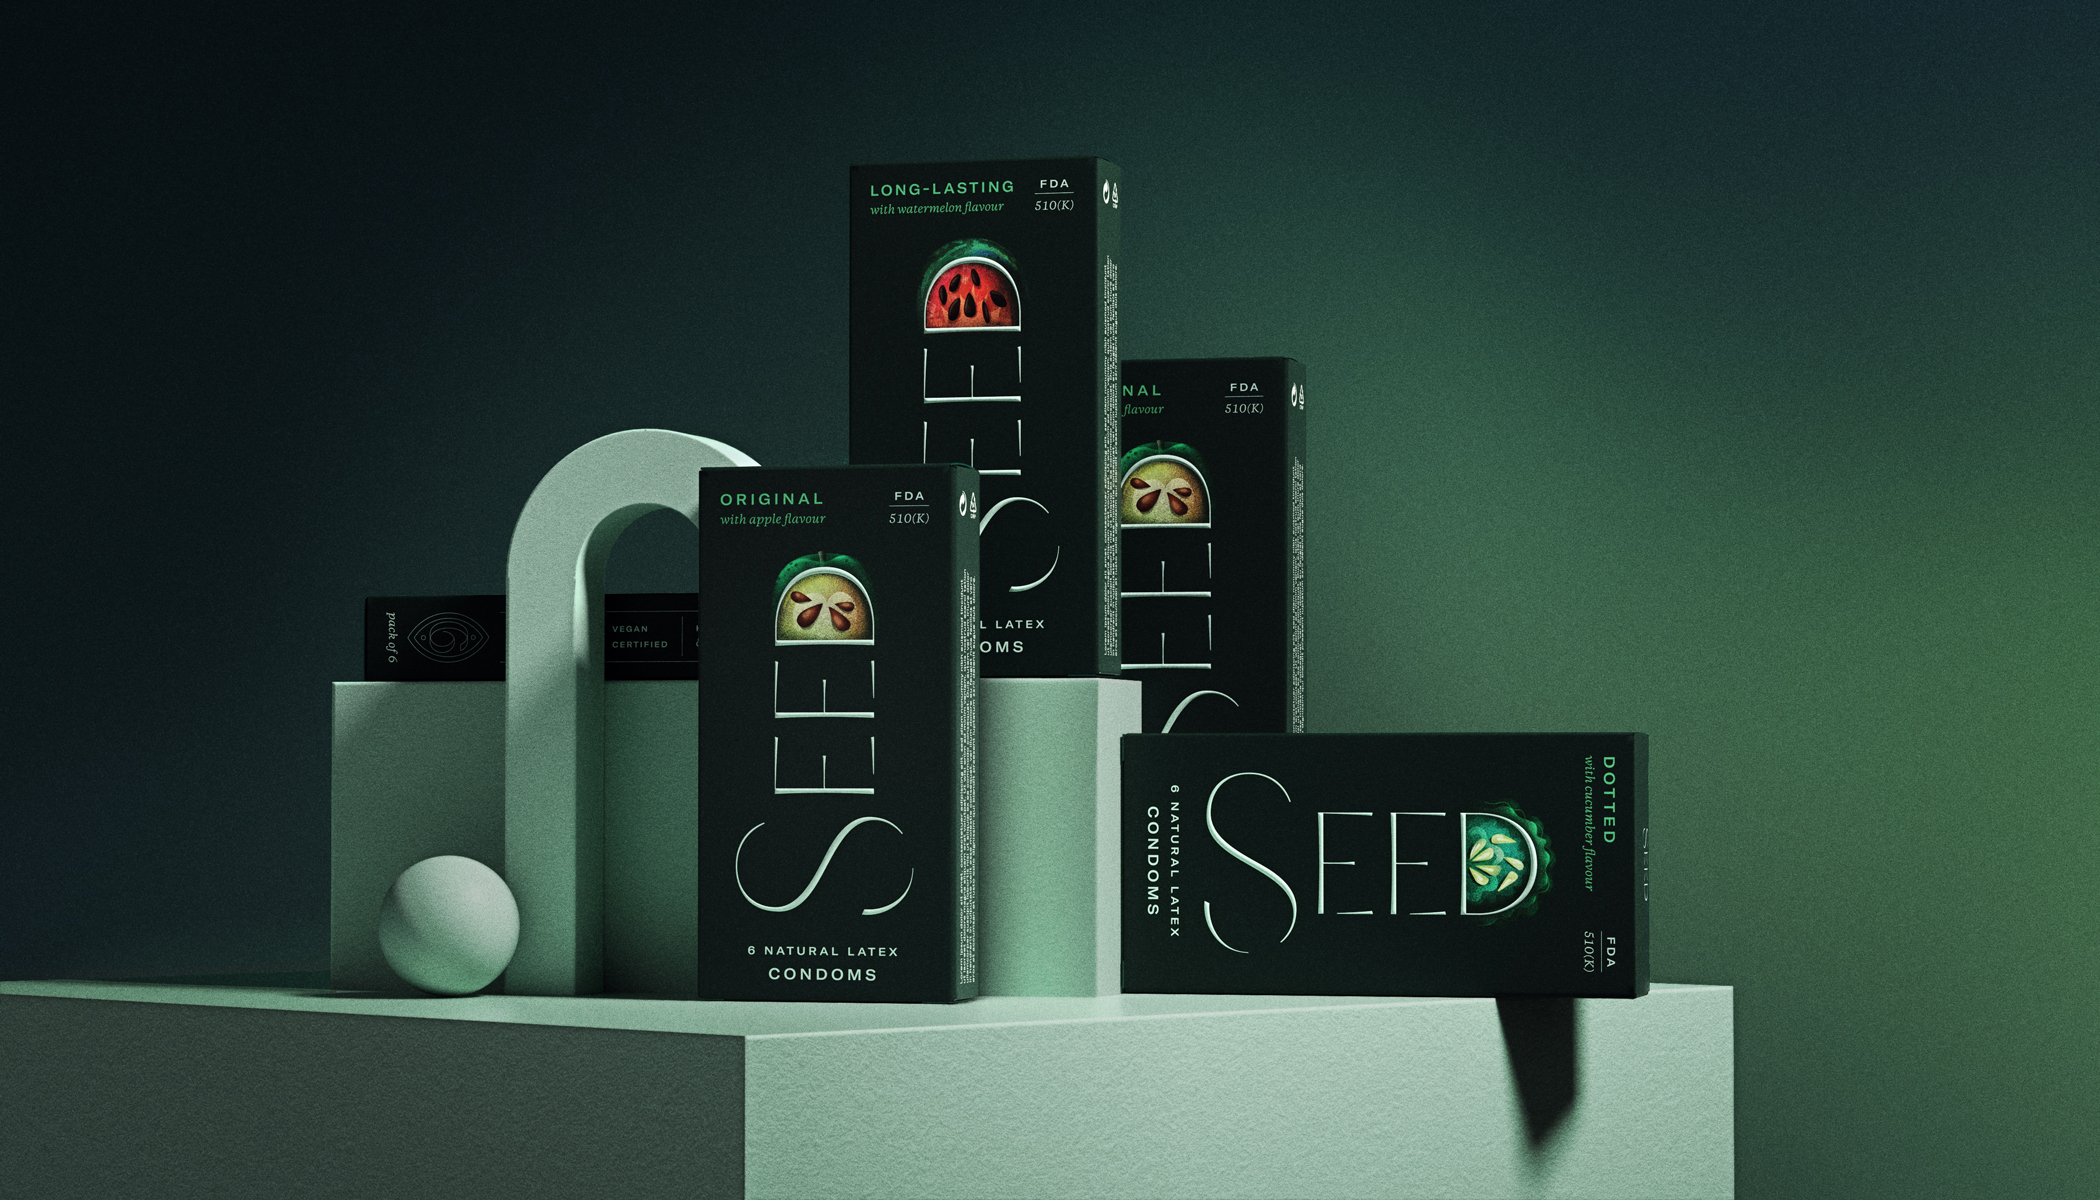 Seed condoms Brand and Packaging Design